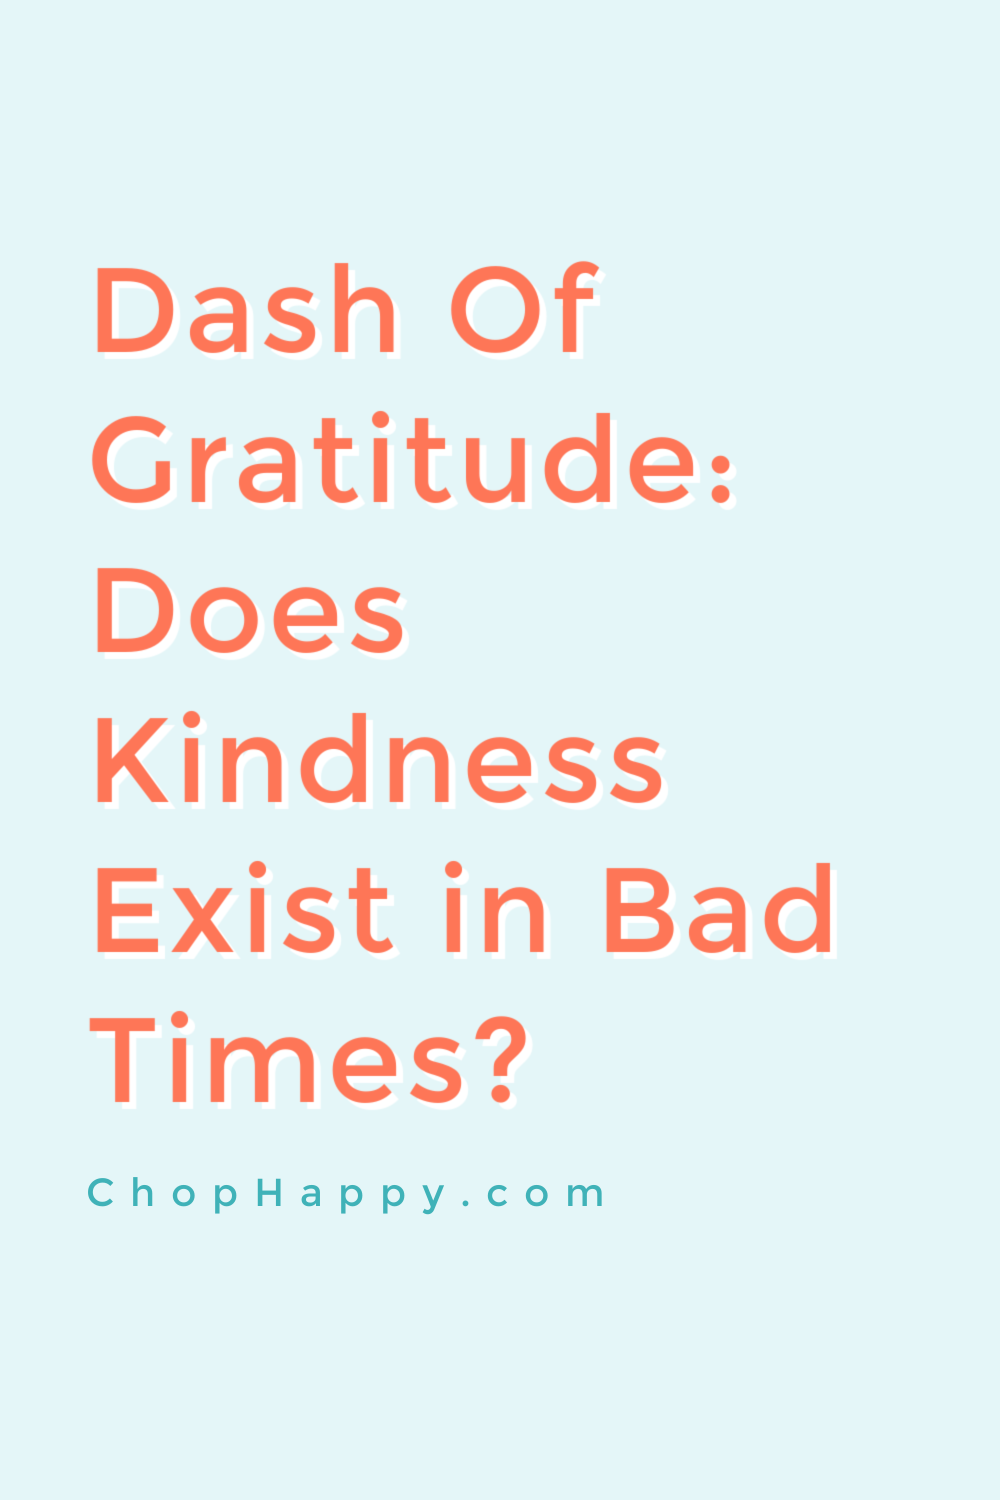 Dash of Gratitude: Does Kindness Exist in Bad Times? Even when things go wrong there is love hope and kindness. Happy Monday! #kindness #gratitude